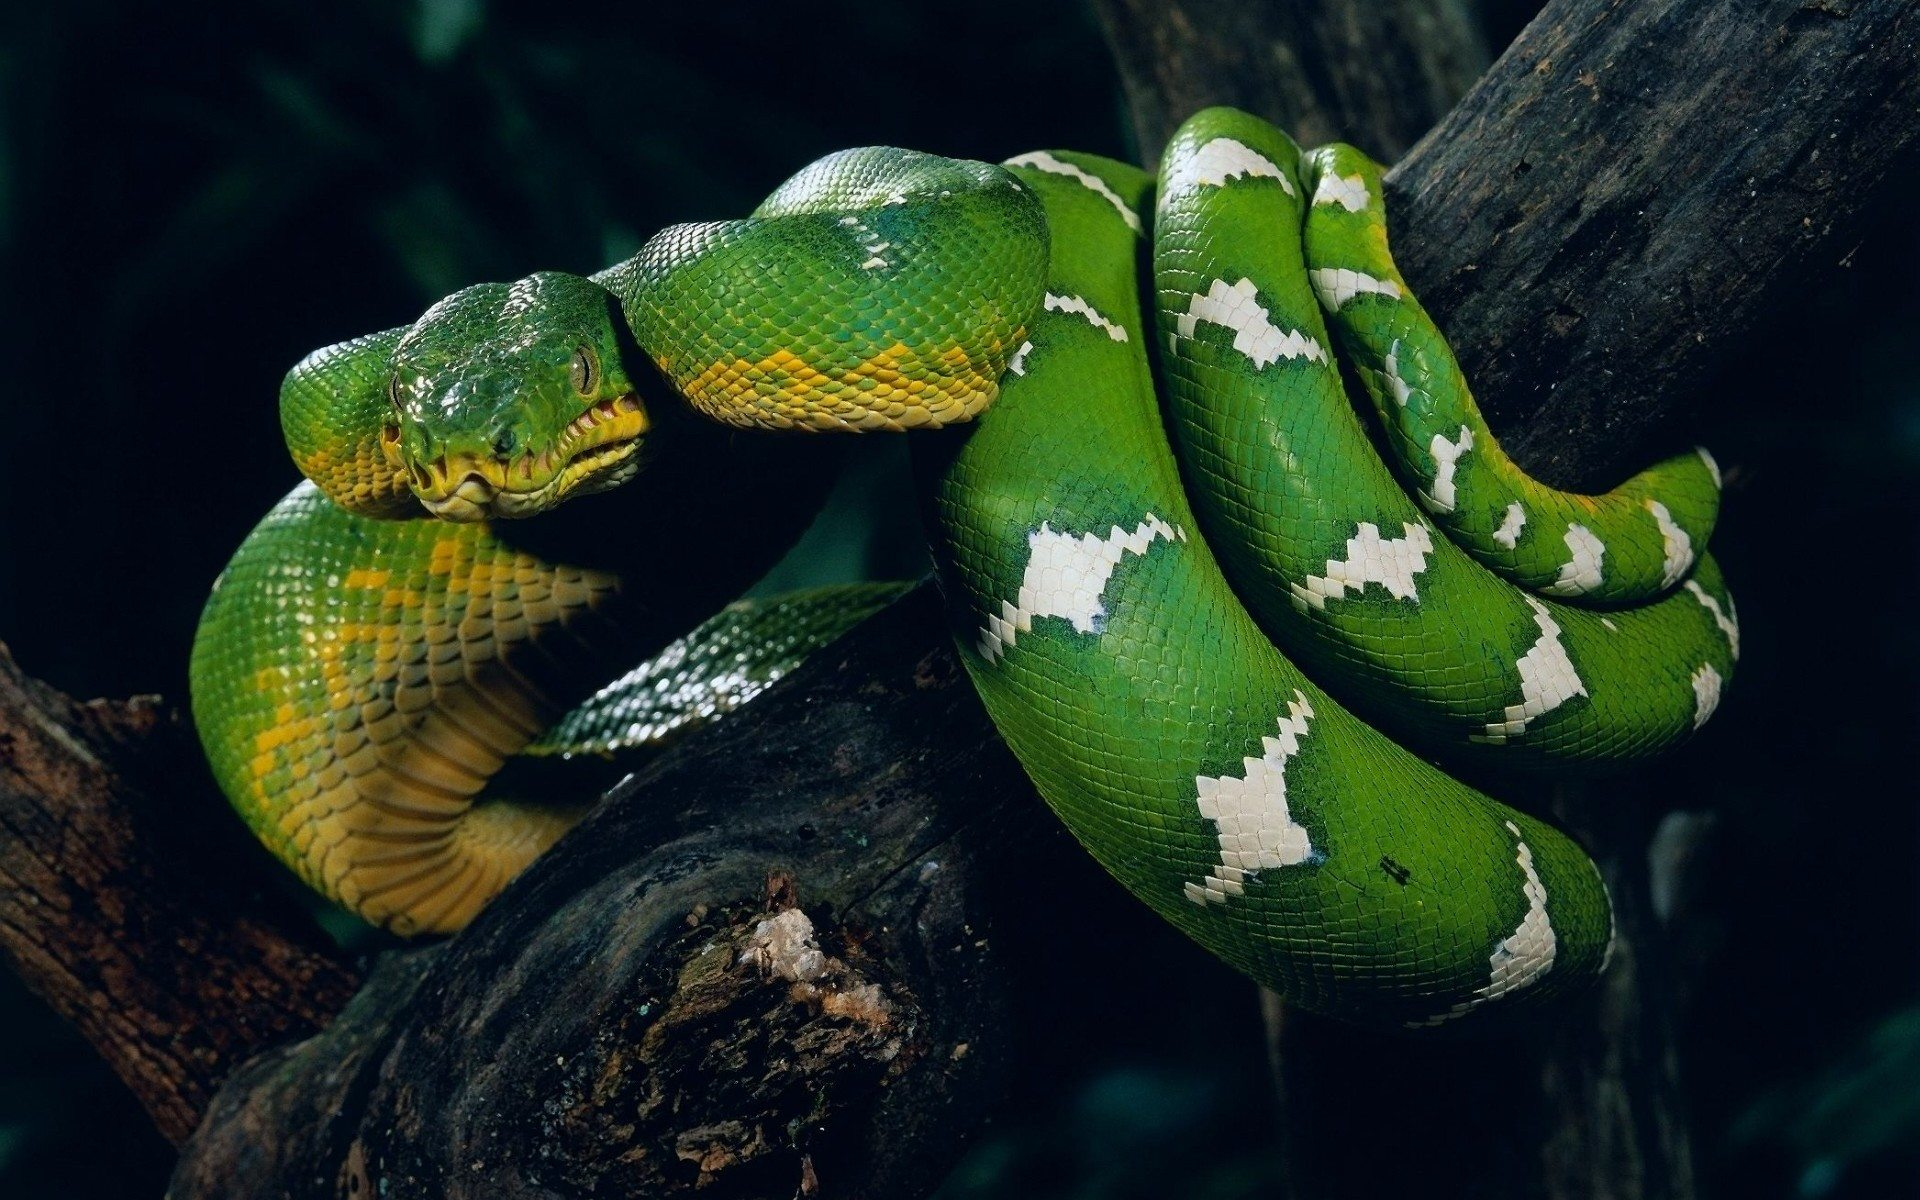 Snakes_30